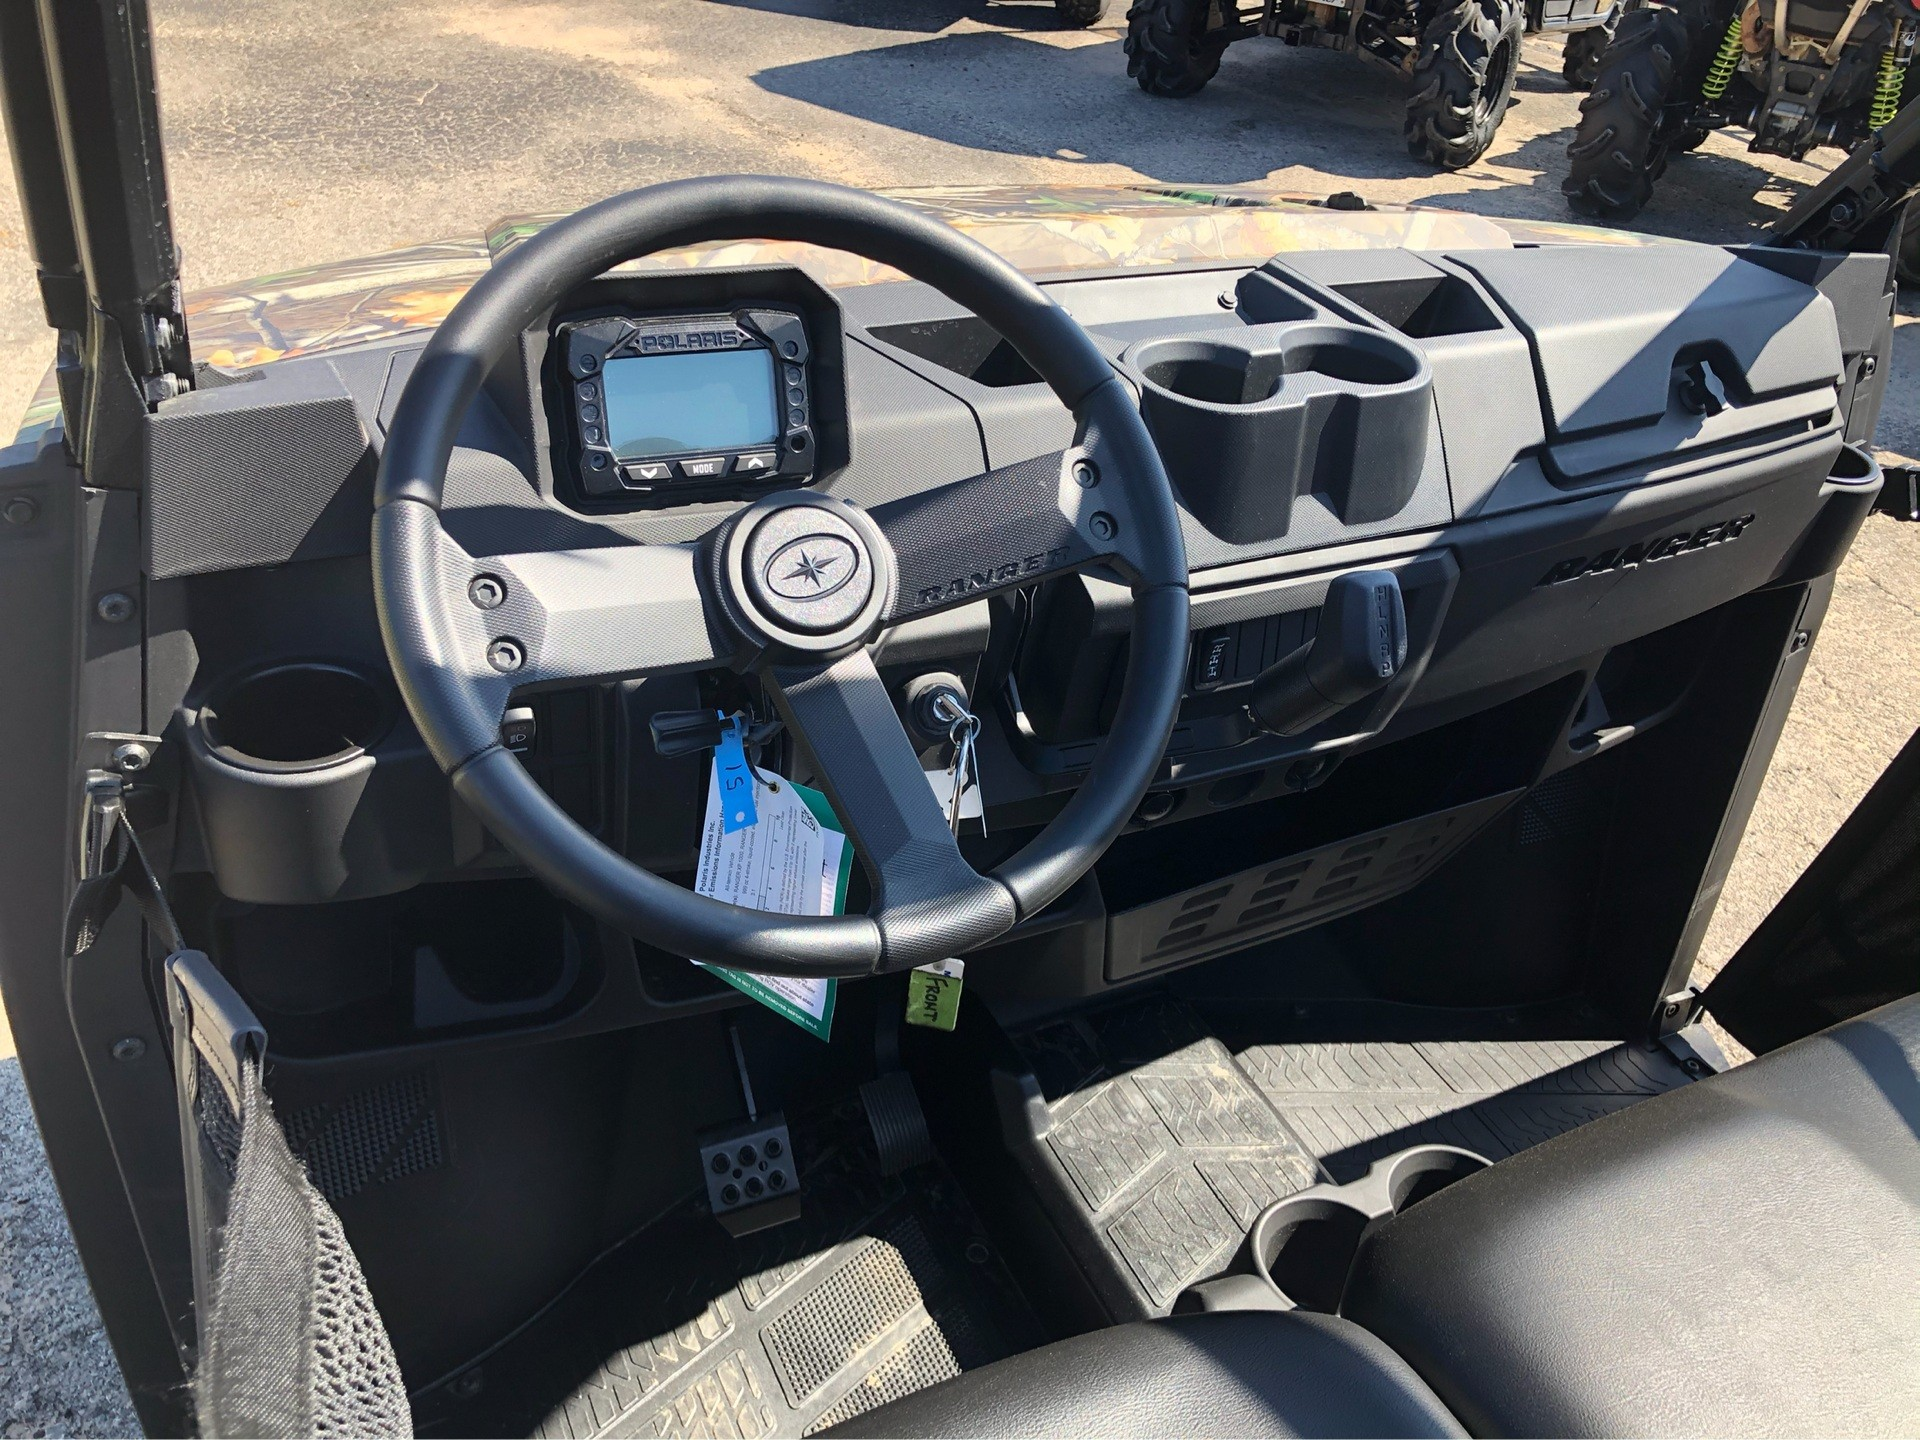 2020 Polaris Ranger Crew 1000 EPS in Cleveland, Texas - Photo 4